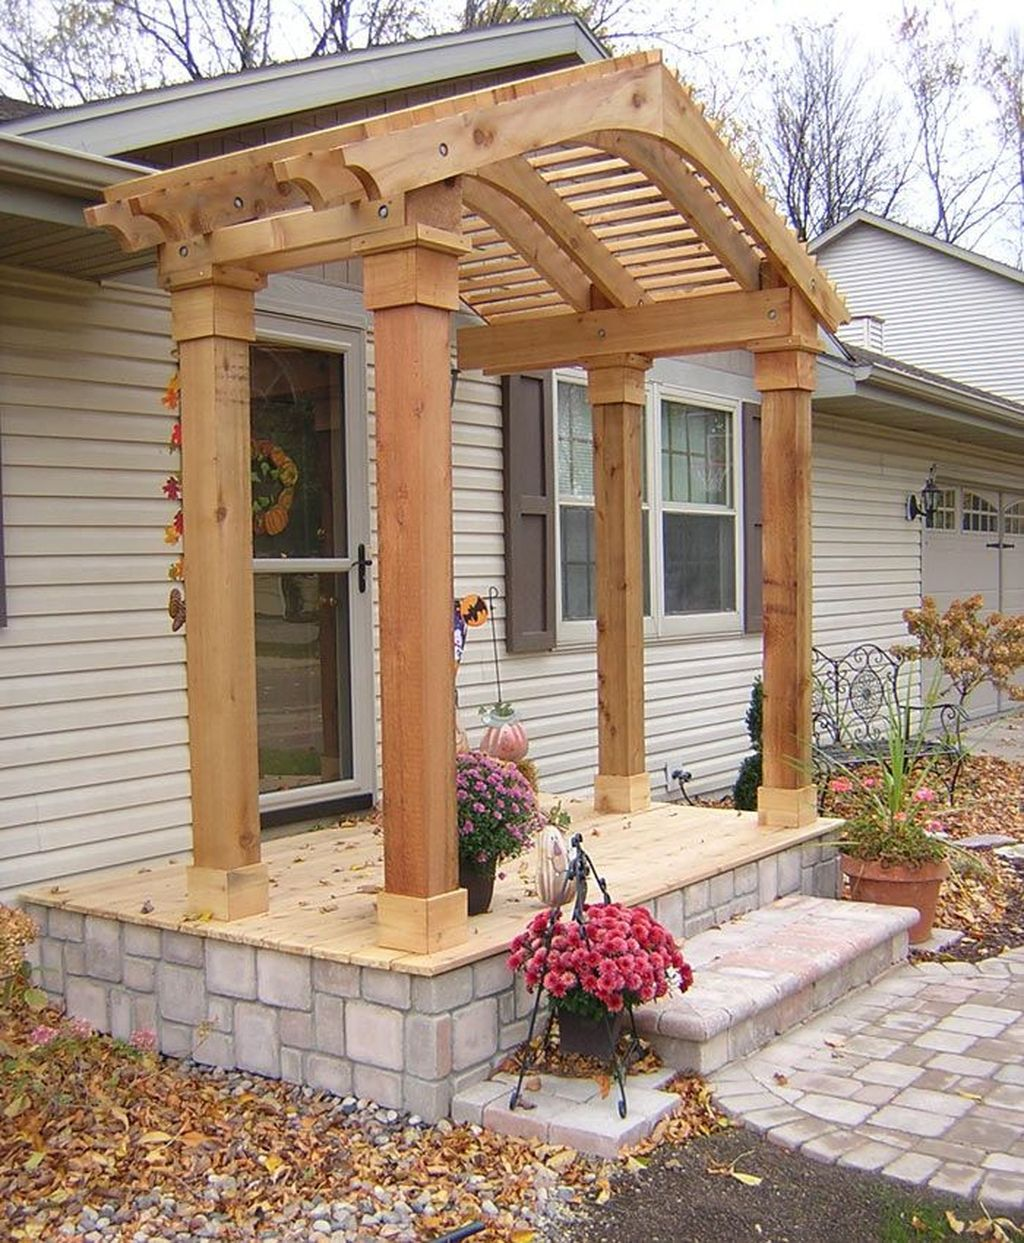 Pergola For Small House: 42 Lovely Front Porch Decor Ideas Match For Any Home